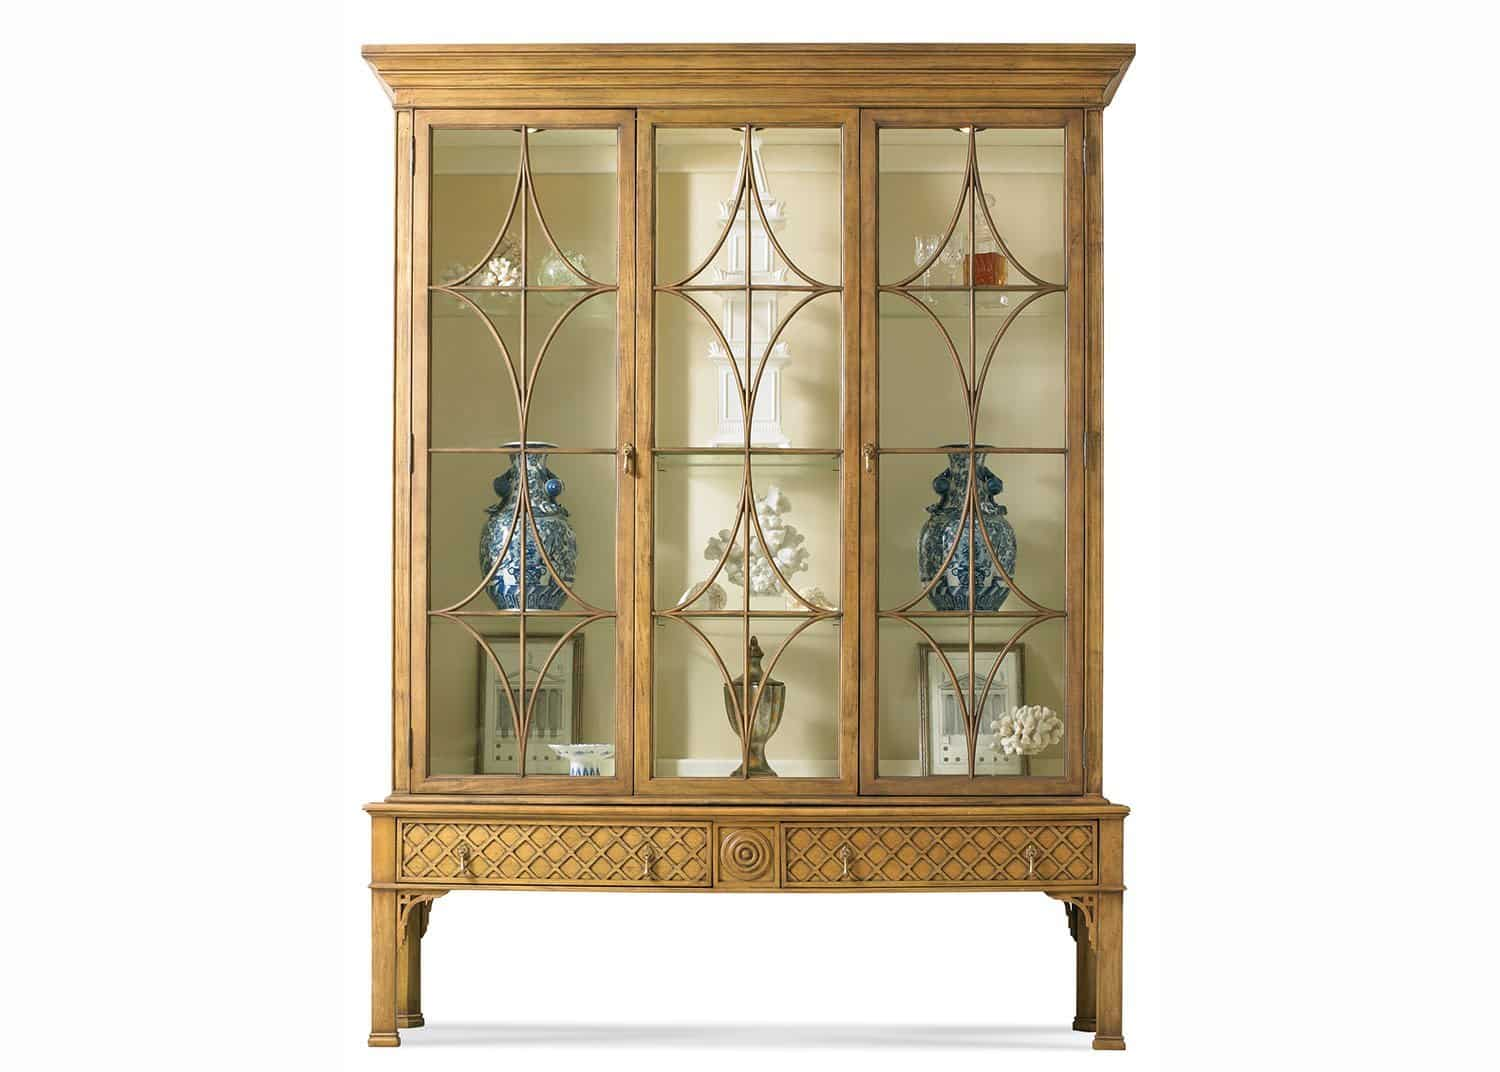 chadwick vitrine chinese chippendale mobilart decor high end furniture. Black Bedroom Furniture Sets. Home Design Ideas